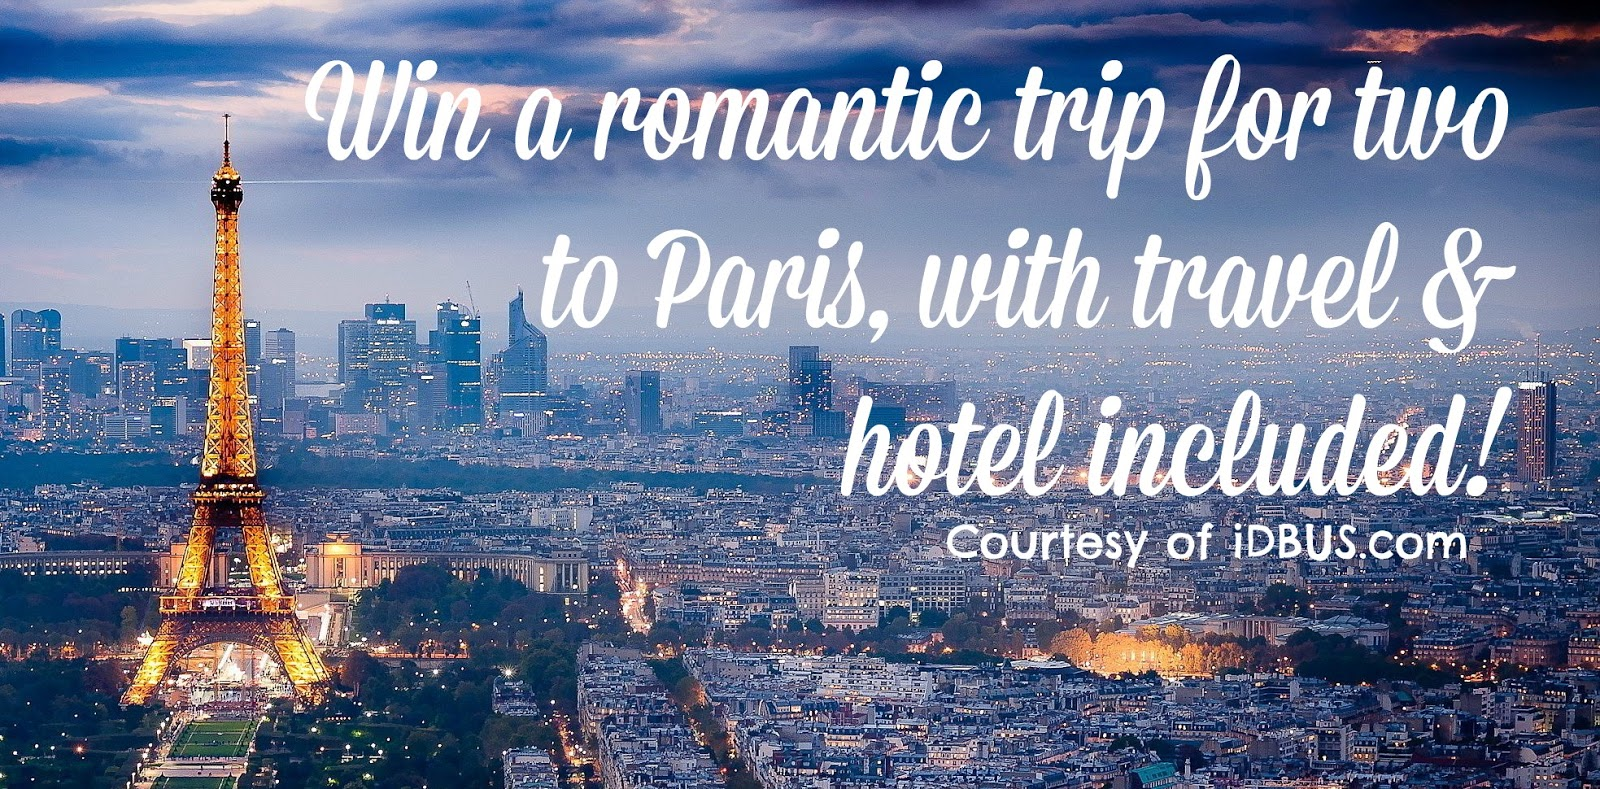 Win a romantic trip to Paris for two